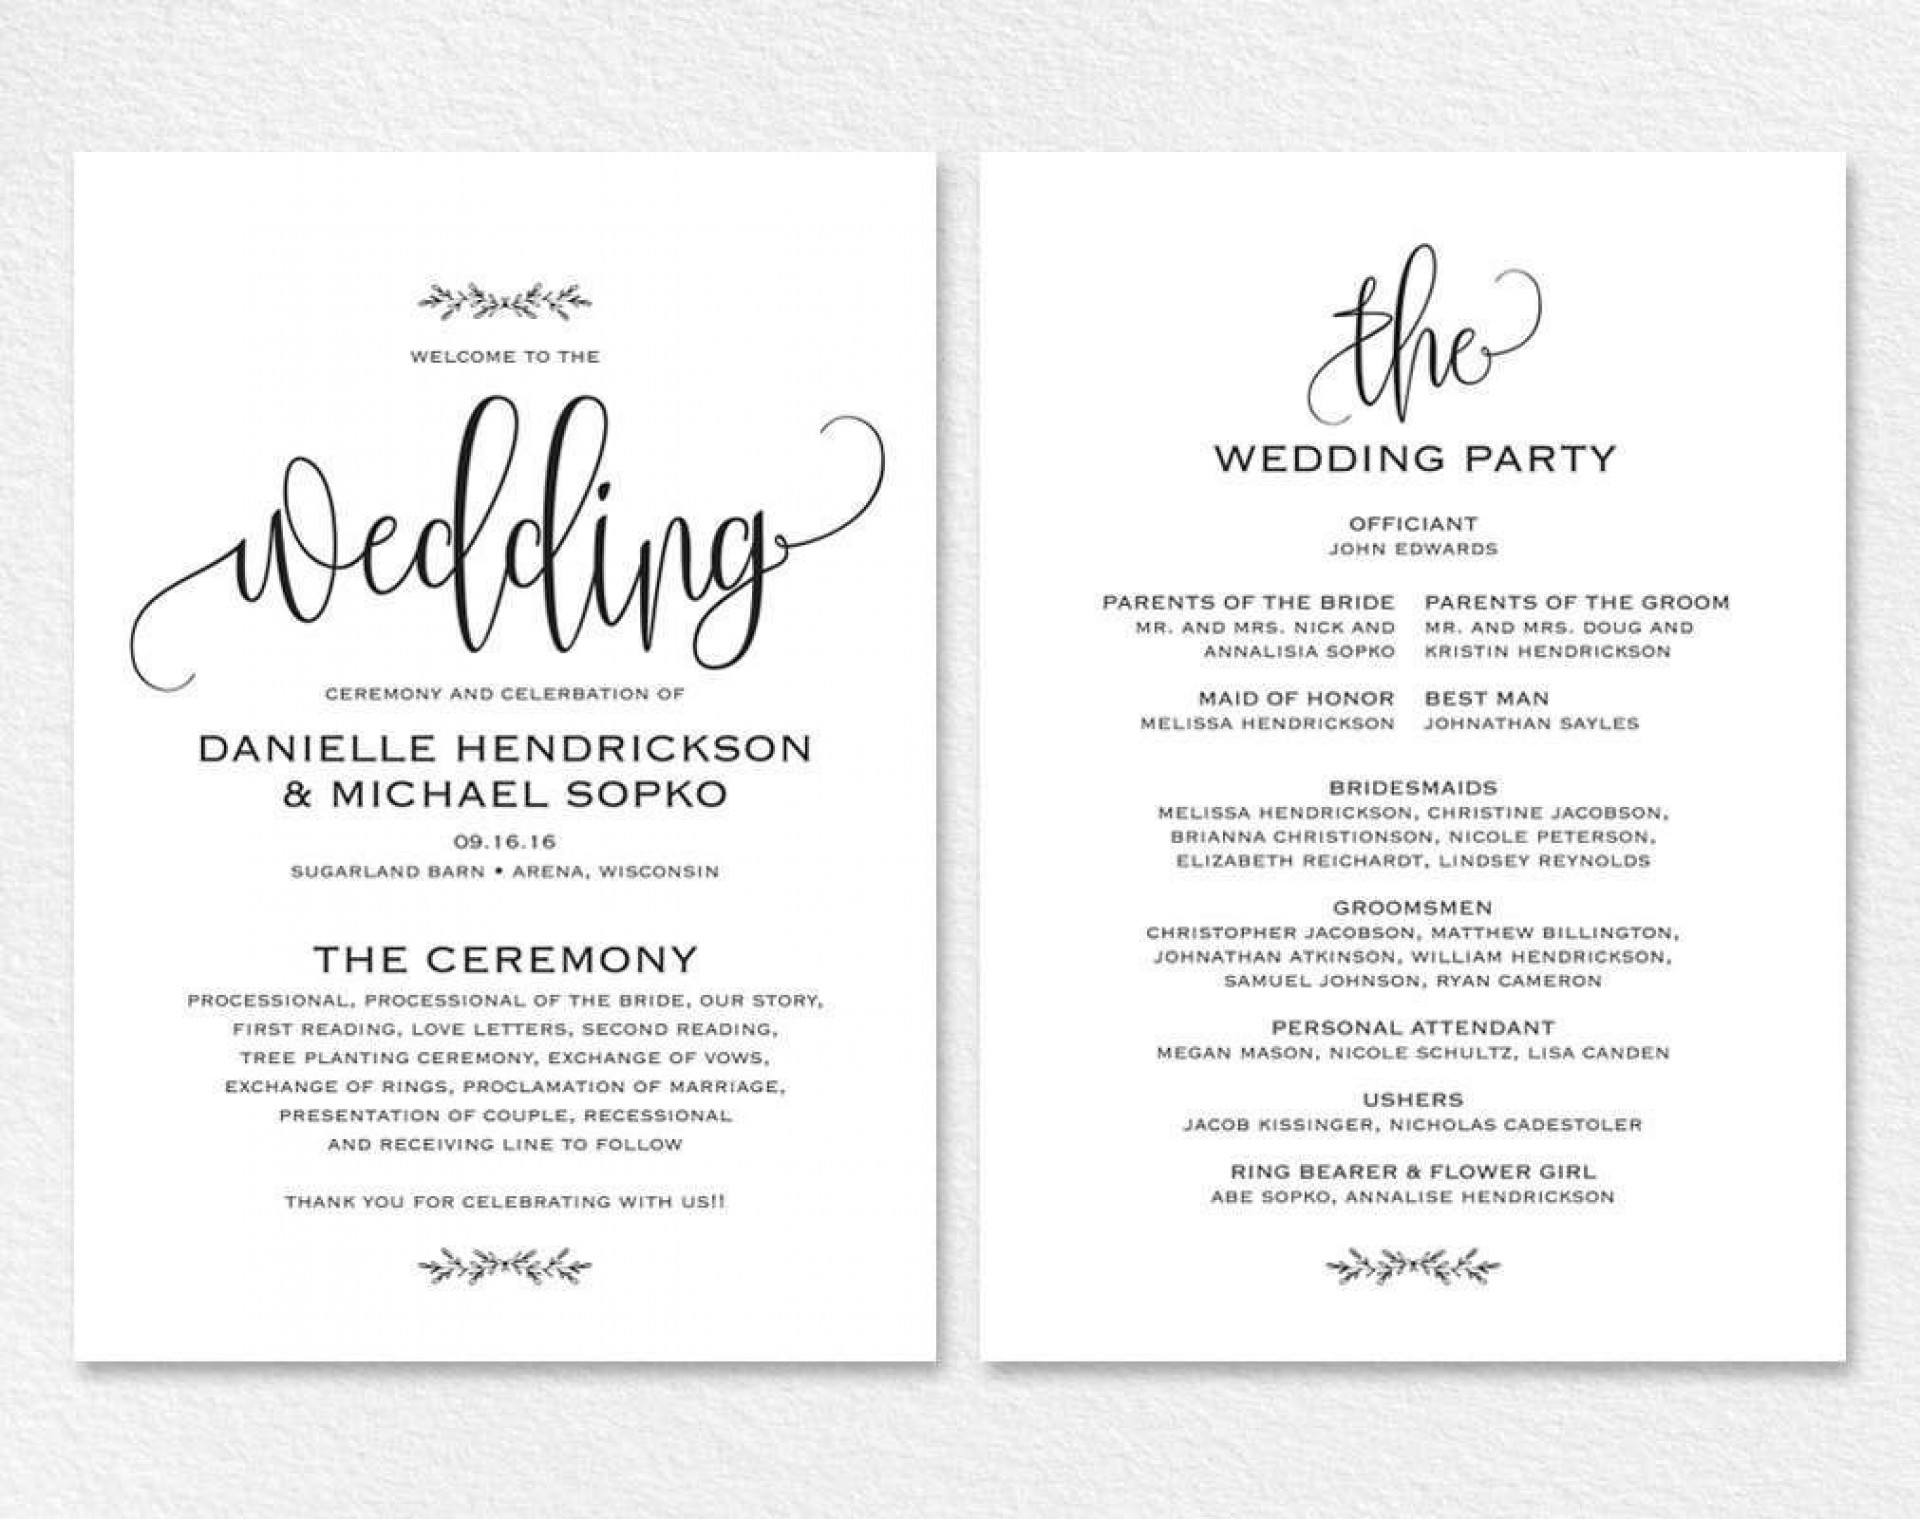 000 Dreaded Wedding Template For Word Example  Free Invitation Indian Card M Program1920